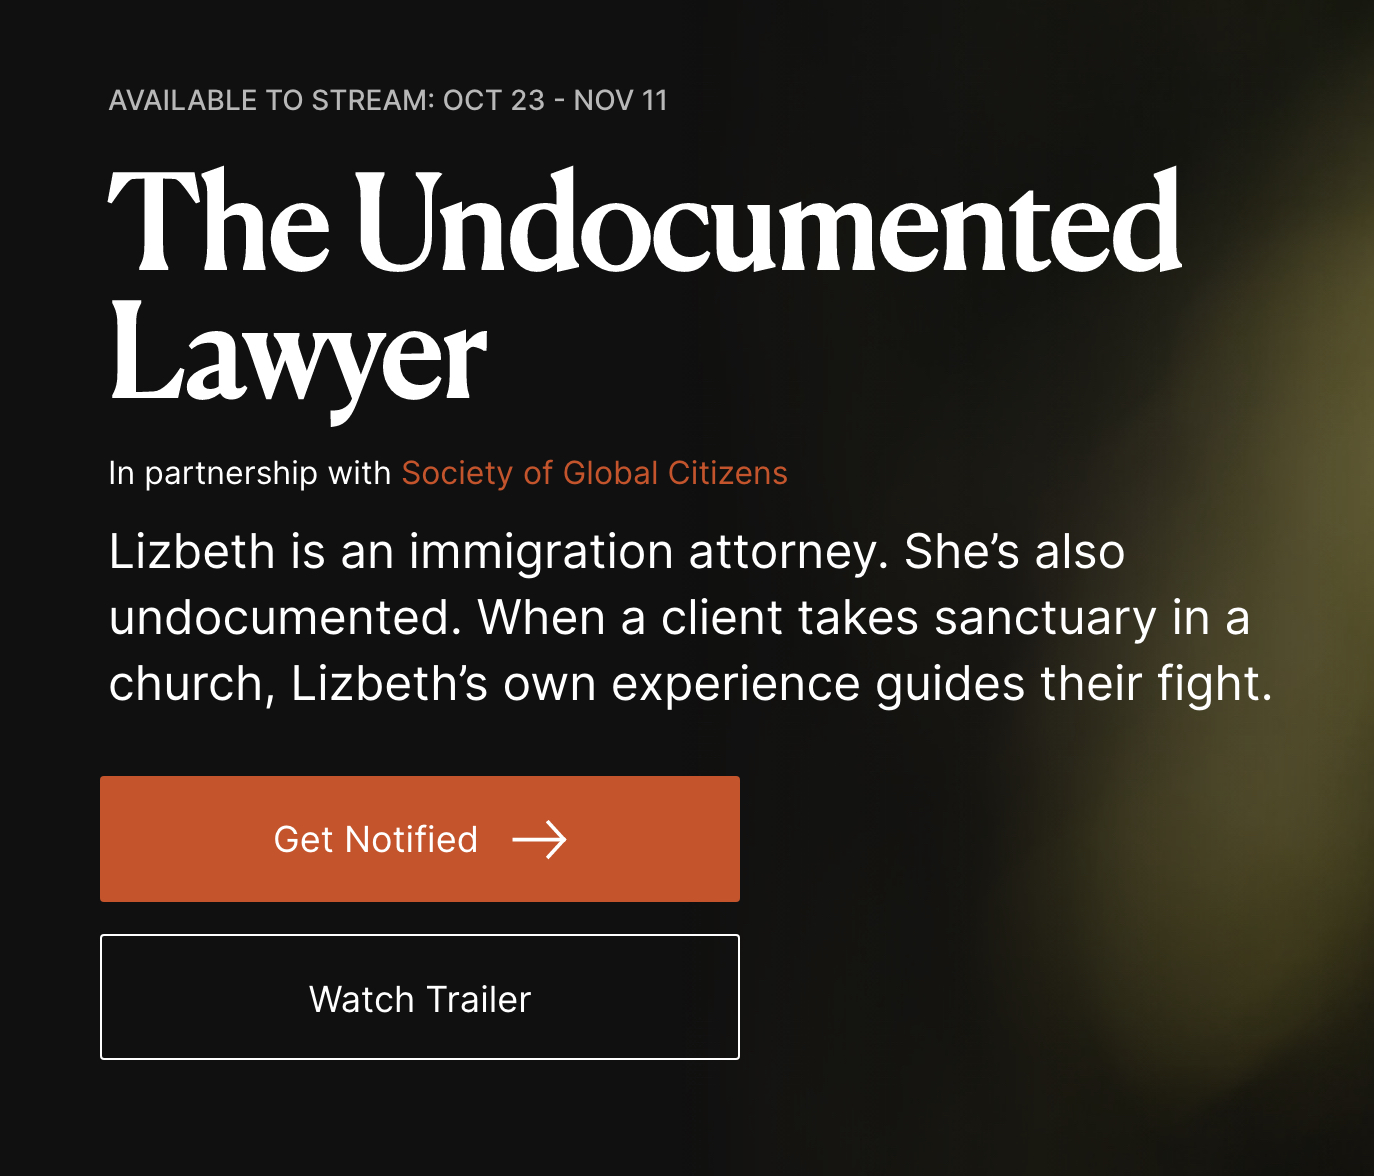 The_Undocumented_Lawyer_2020-10-16_20-17-41.jpg